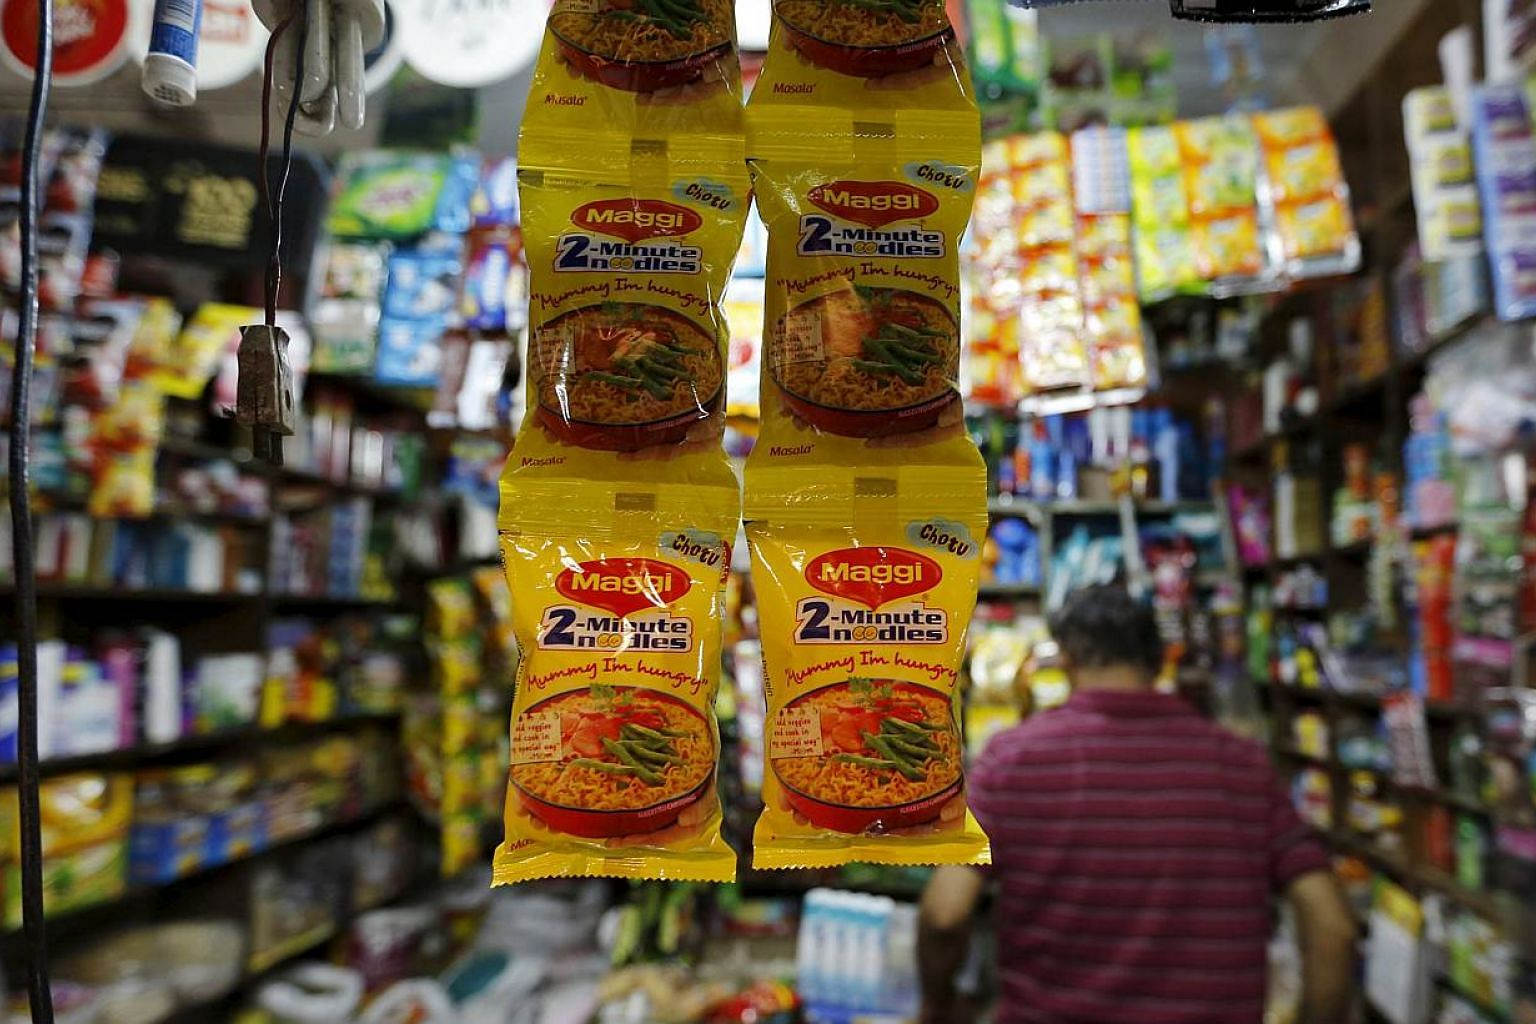 Packets of Maggi instant noodles are seen on display at a grocery store in Ahmedabad, India, on June 3, 2015.India's food safety regulator said on Friday that laboratory tests had found overwhelming evidence that Nestle India's instant noodle p